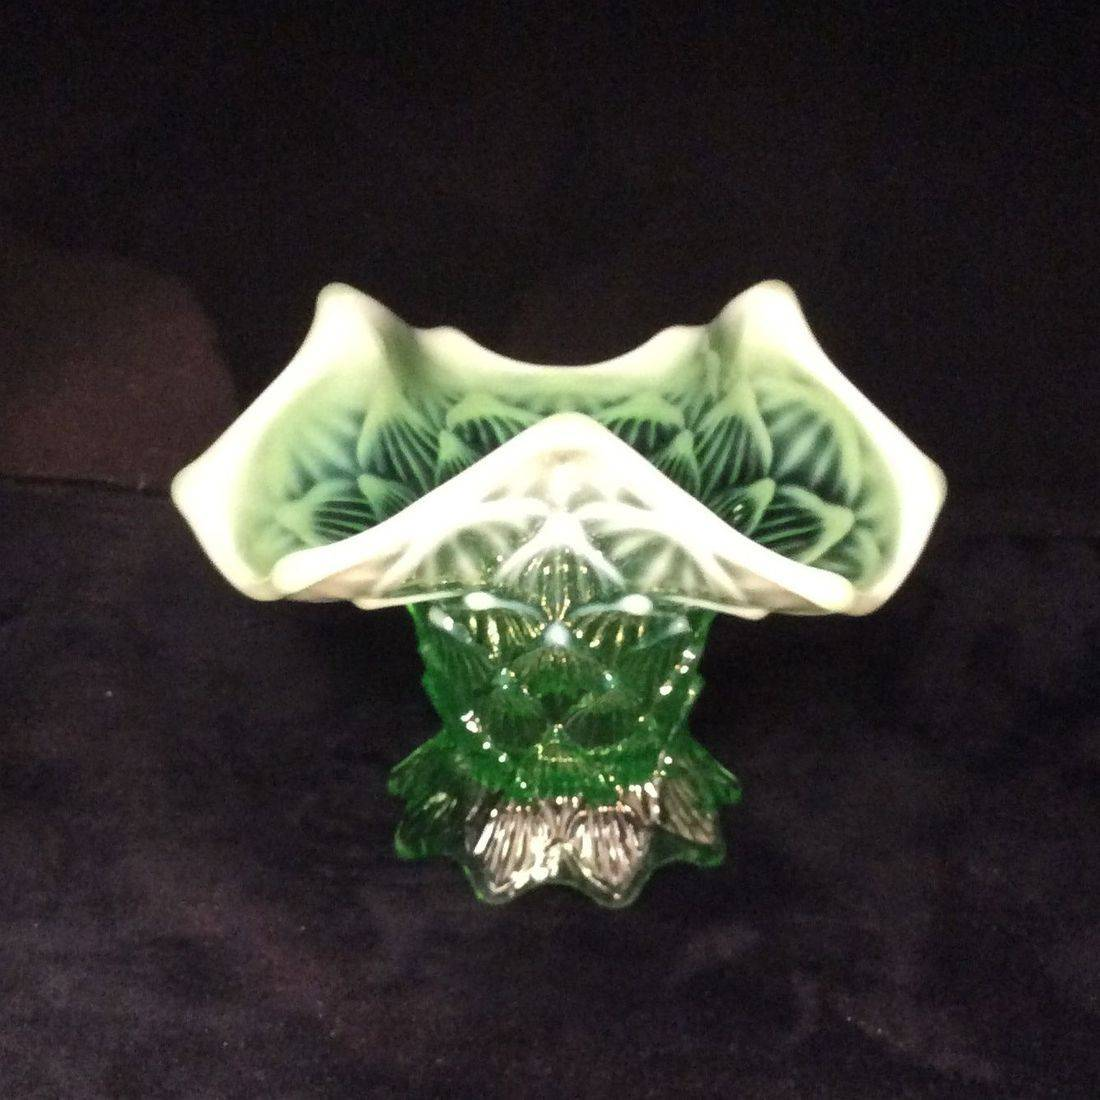 "Early 1900's Northwood Green Vasoline Opalescent Vase Palisades Pattern  4-5/8"" H x 6-1/4"" W.  $45.00"